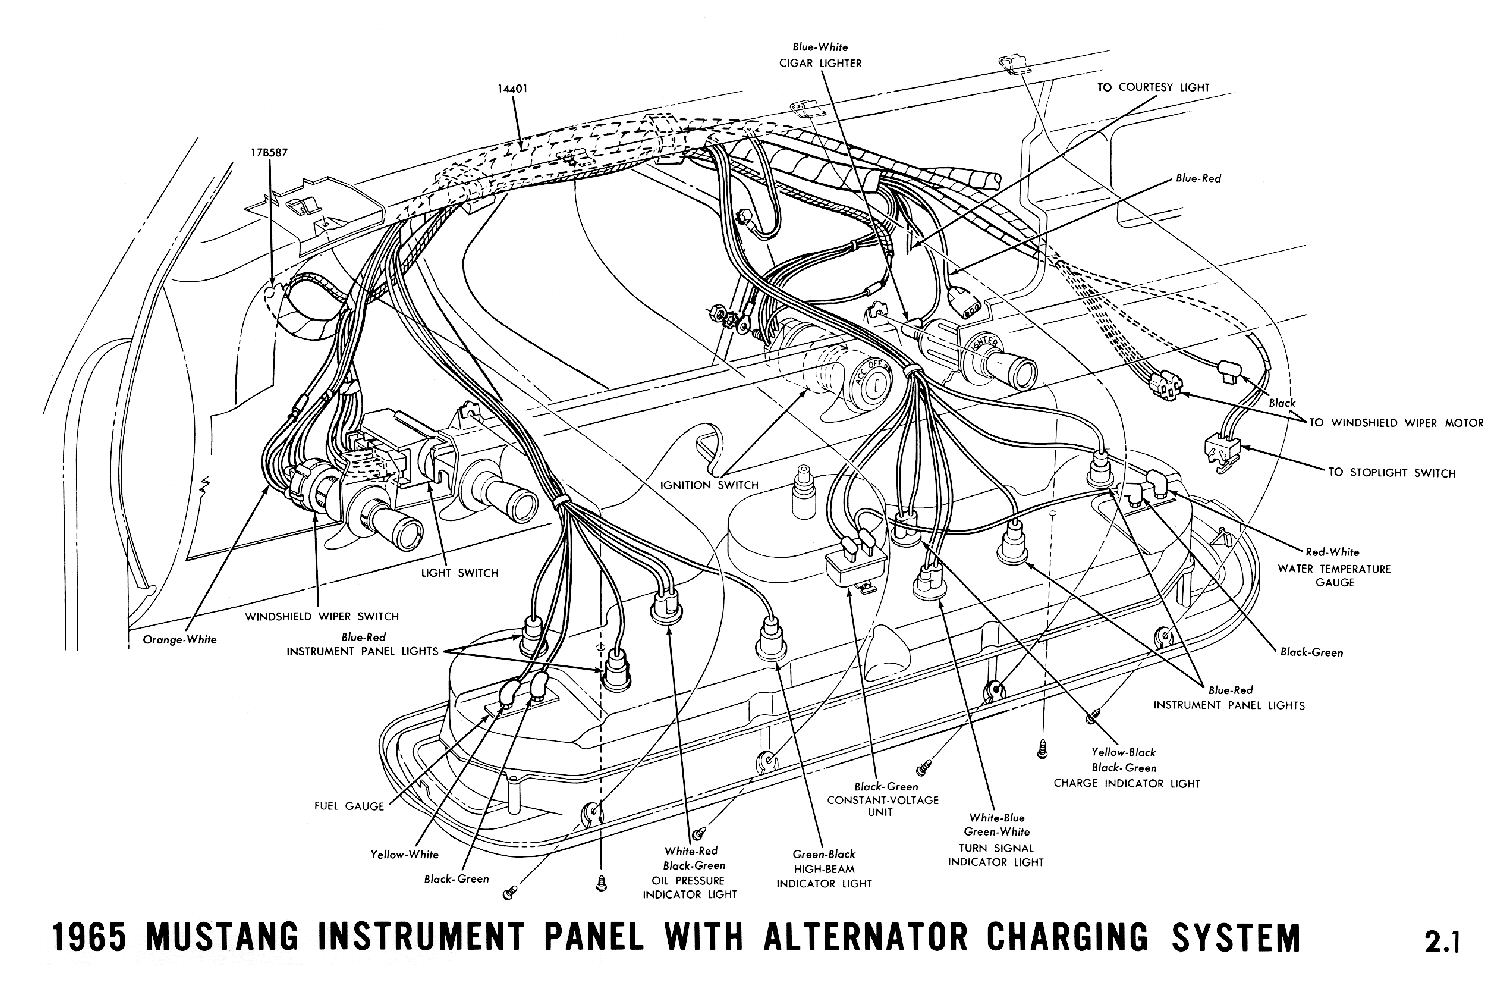 1965a 1965 mustang wiring diagrams average joe restoration 1966 mustang wiring harness kit at readyjetset.co